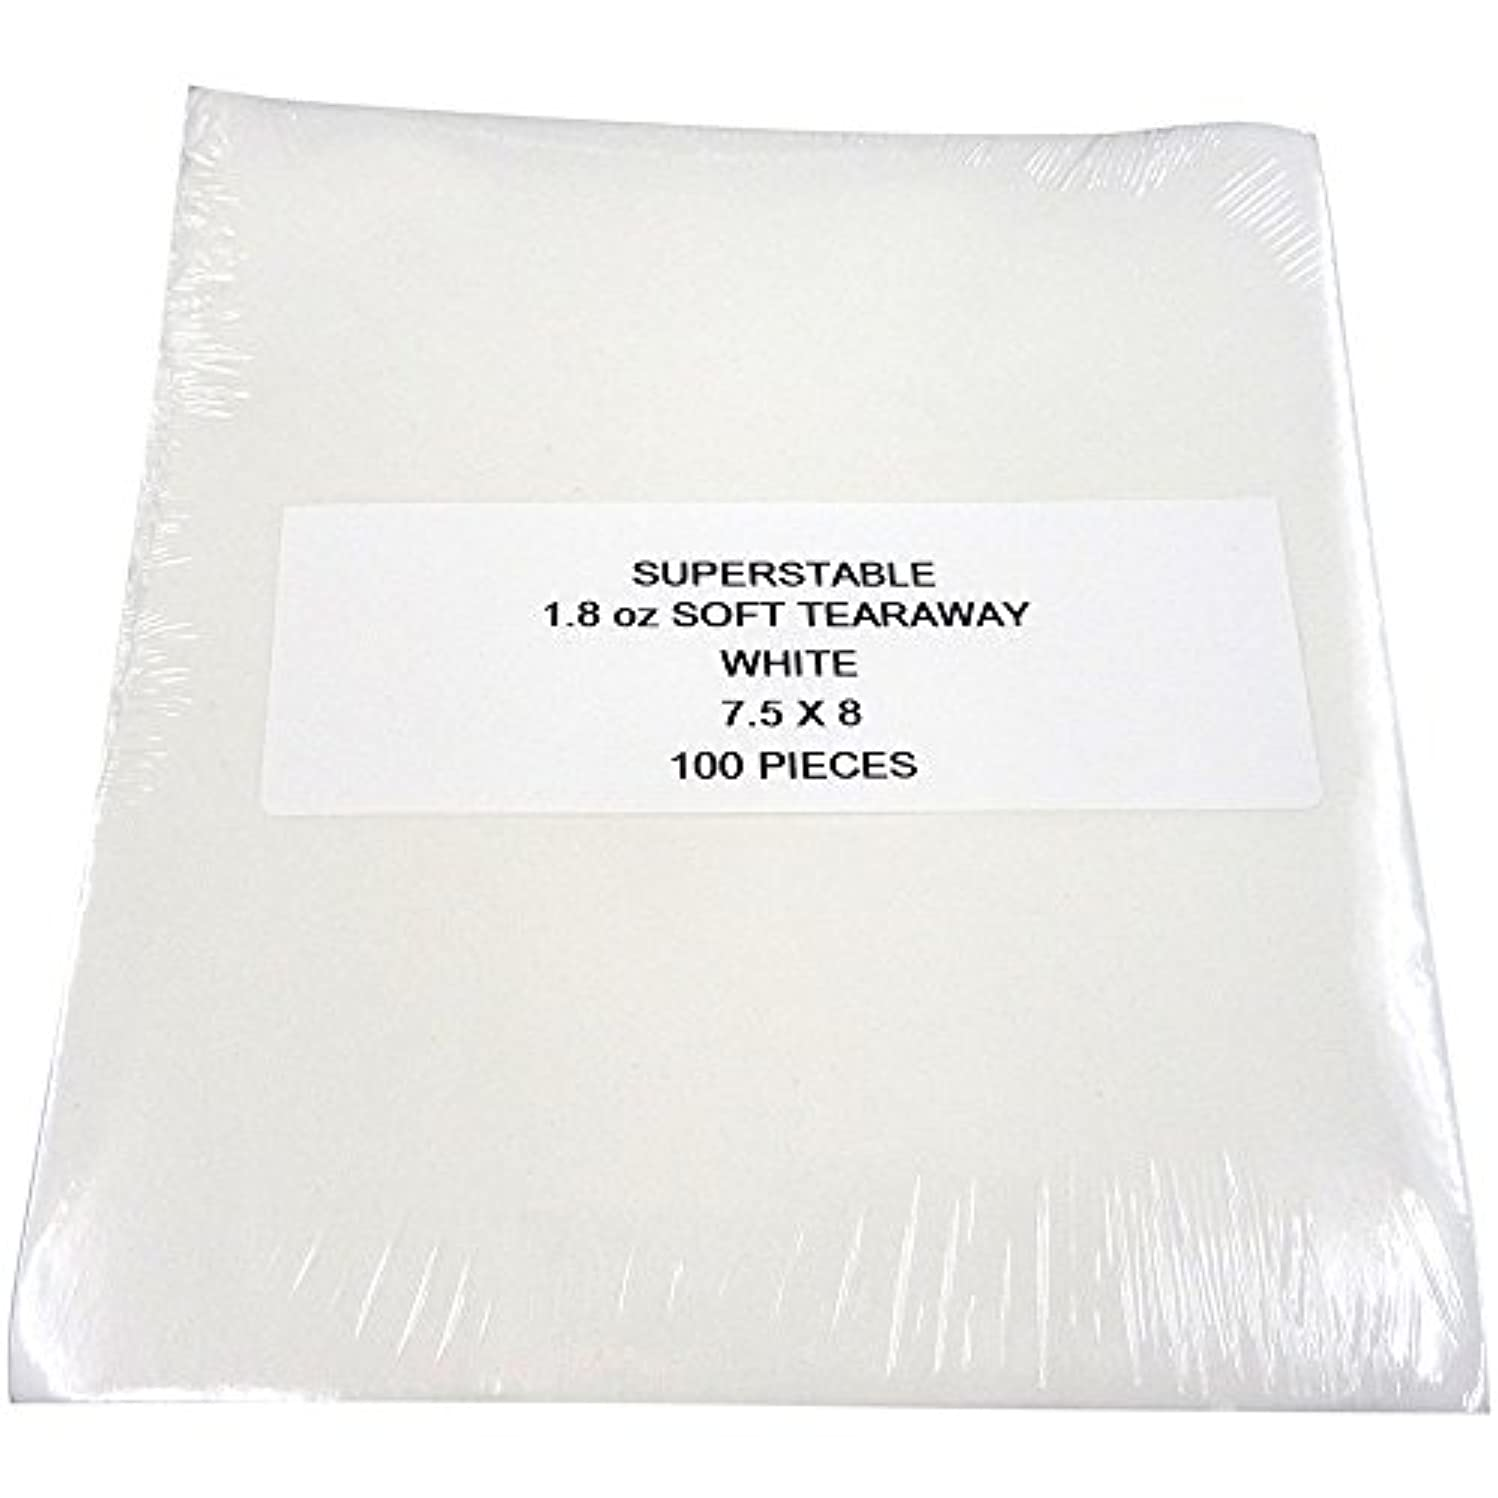 Tear Away Stabilizer White 1.8 oz 100 Precut Sheets 7.5 inch x 8 inch. SuperStable Embroidery Stabilizer Backing